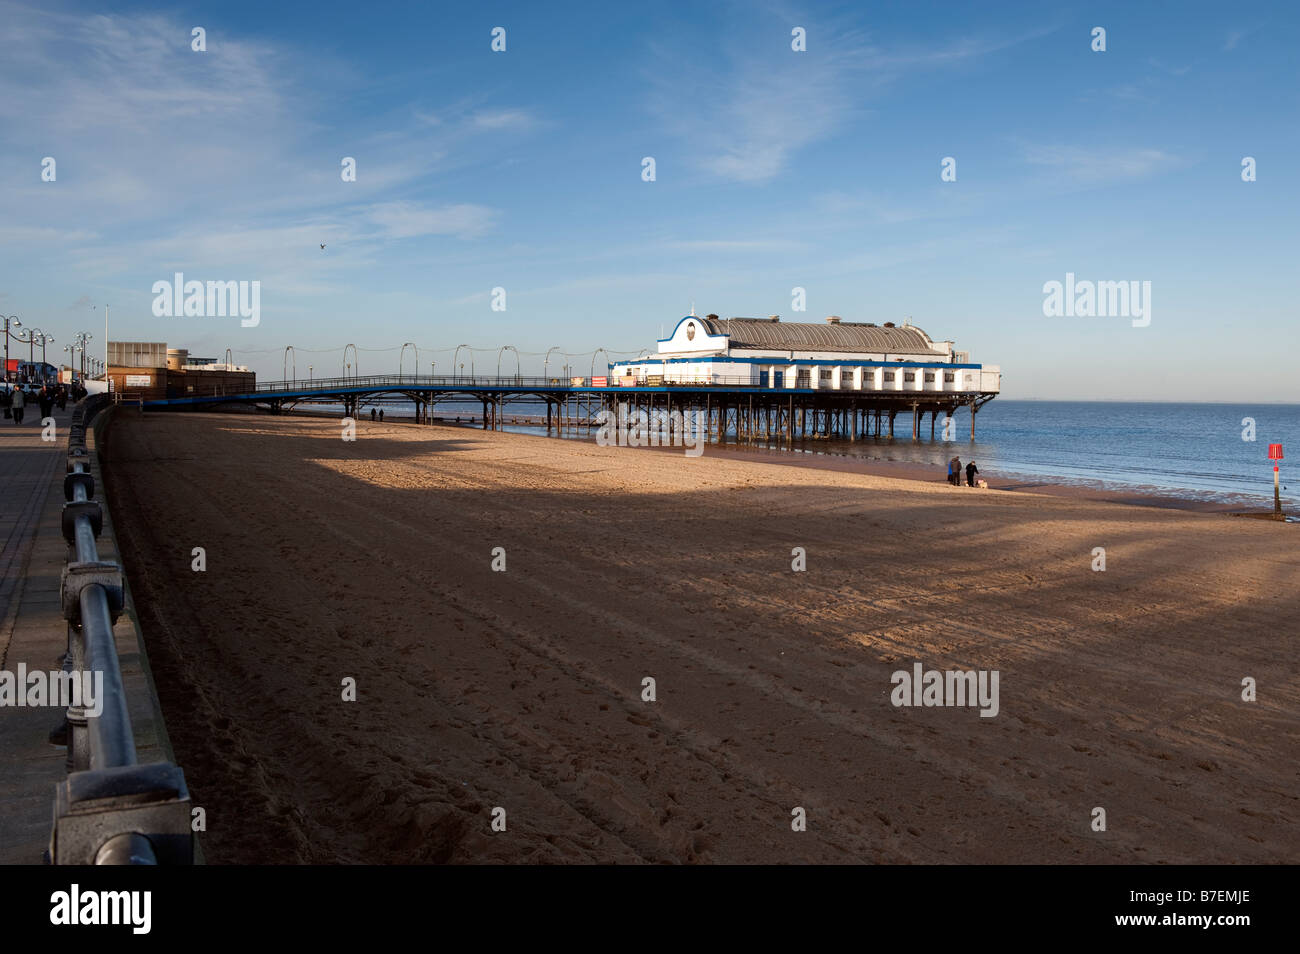 Cleethorpes pier, North Lincolnshire,Great Britain - Stock Image